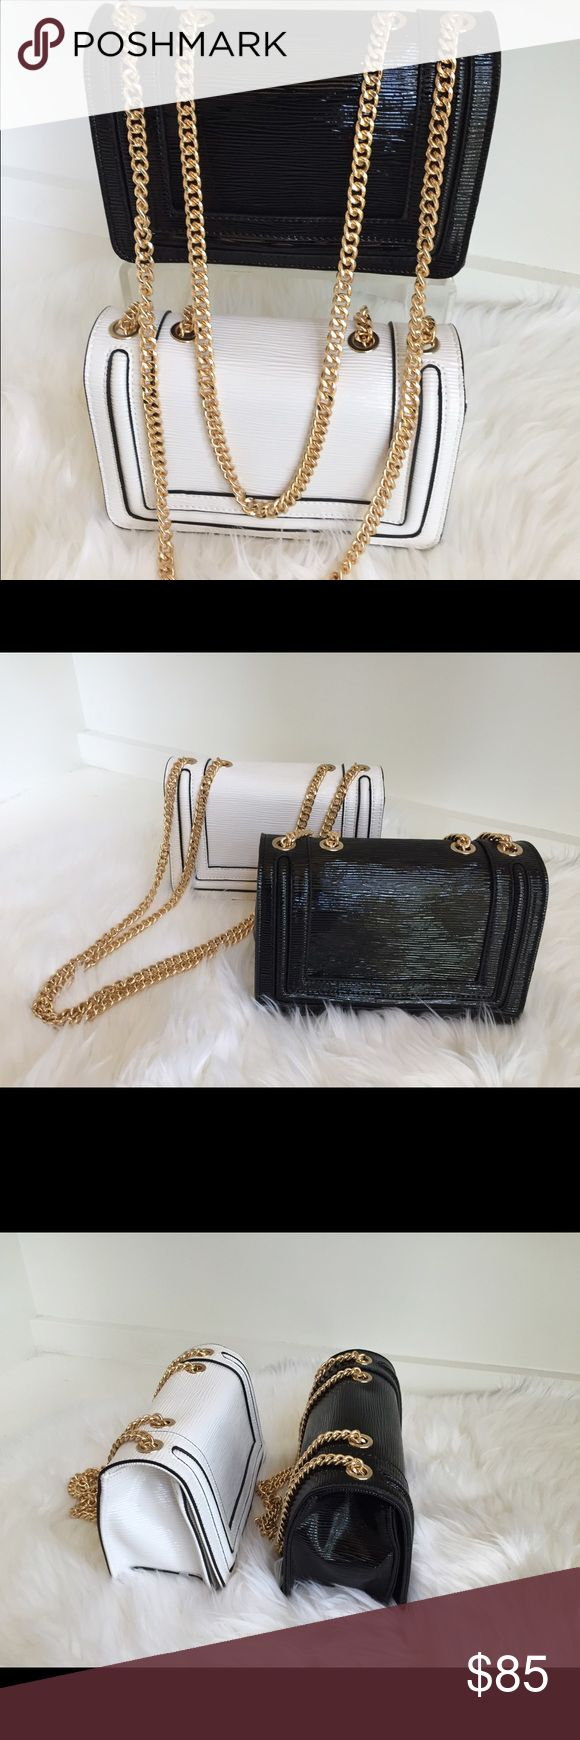 Italian gold chain clutches Beautiful evening or cocktail clutches adorned with gold chain. Perfect for a night in town or a soirée with friends . A must have , colors: Black and white Bags Clutches & Wristlets